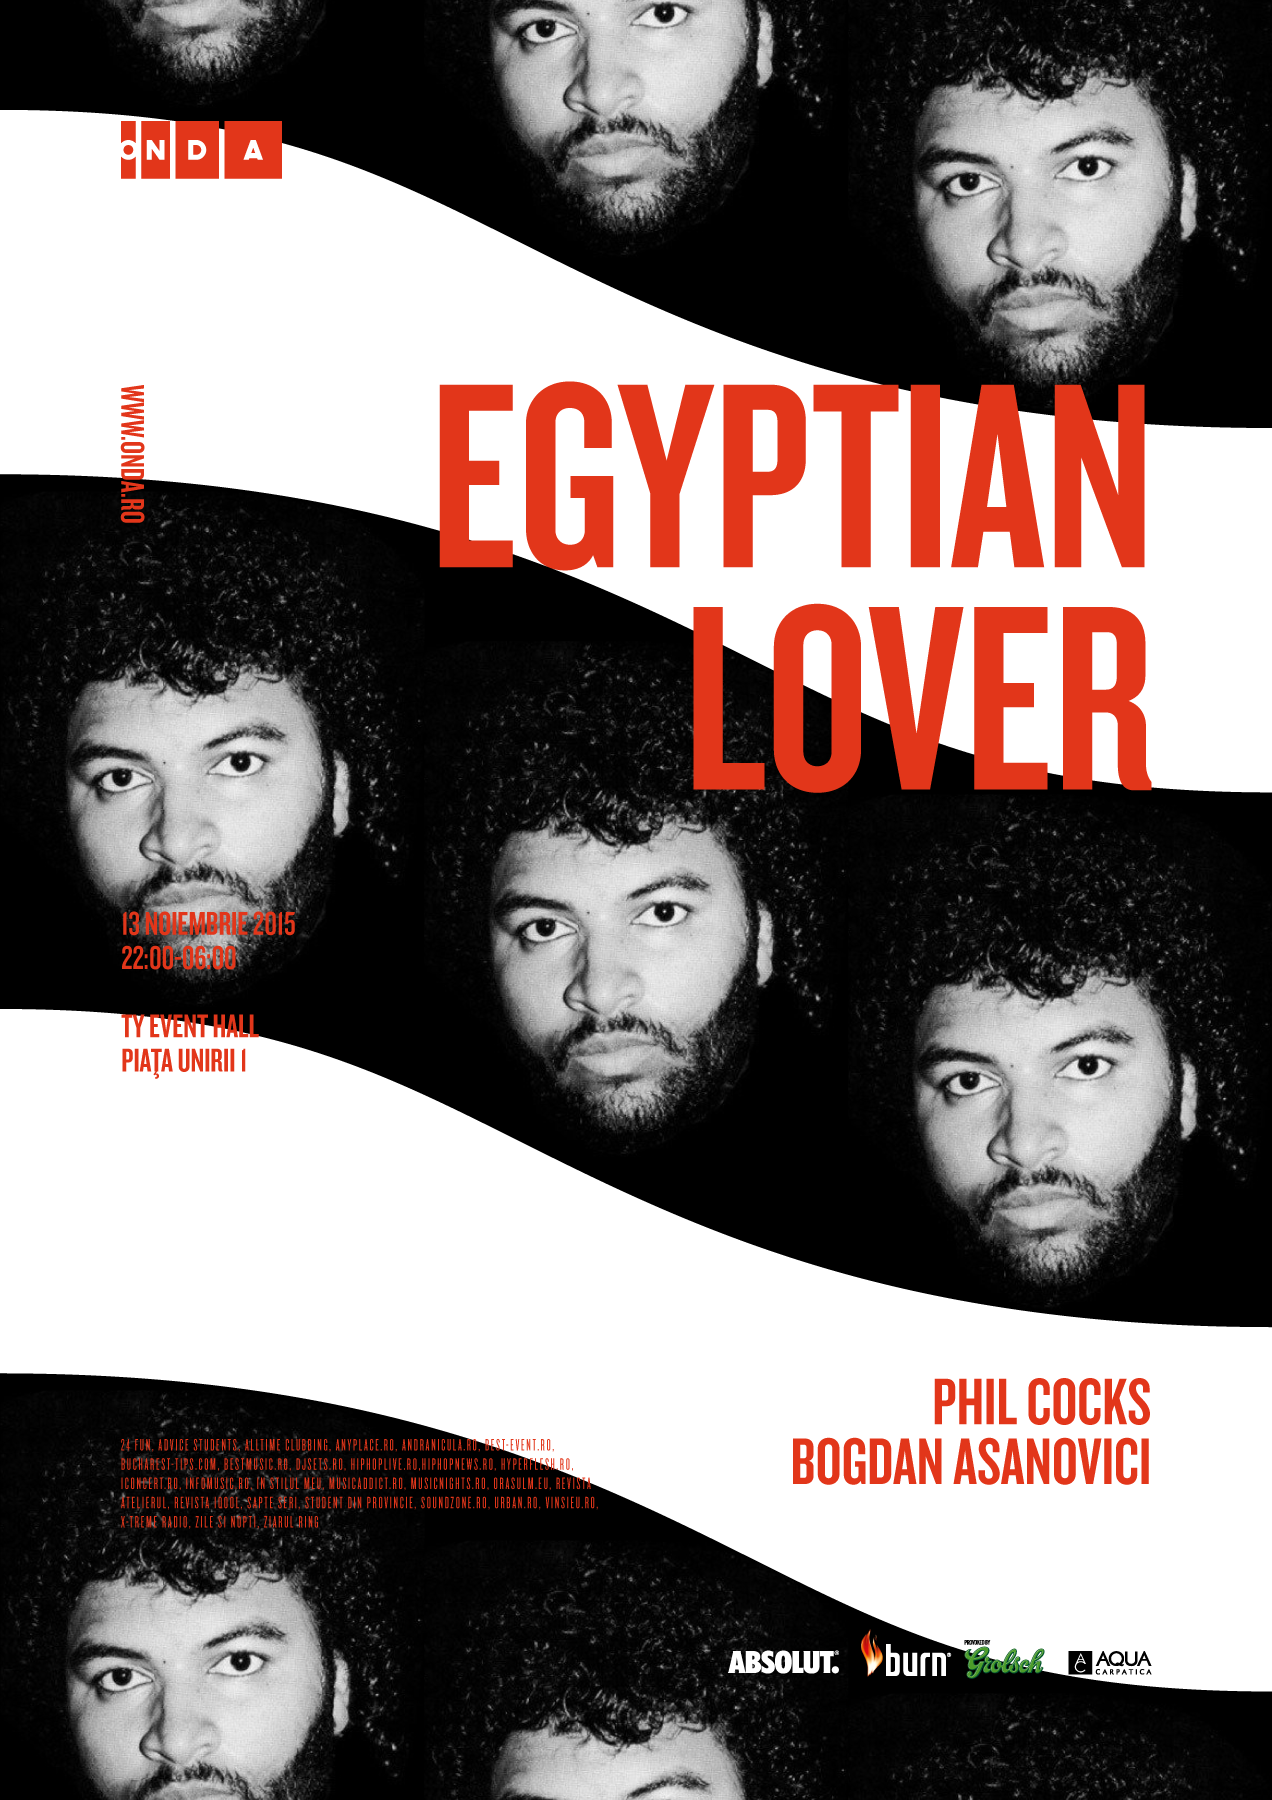 Onda - Egyptian Lover - 13 Nov